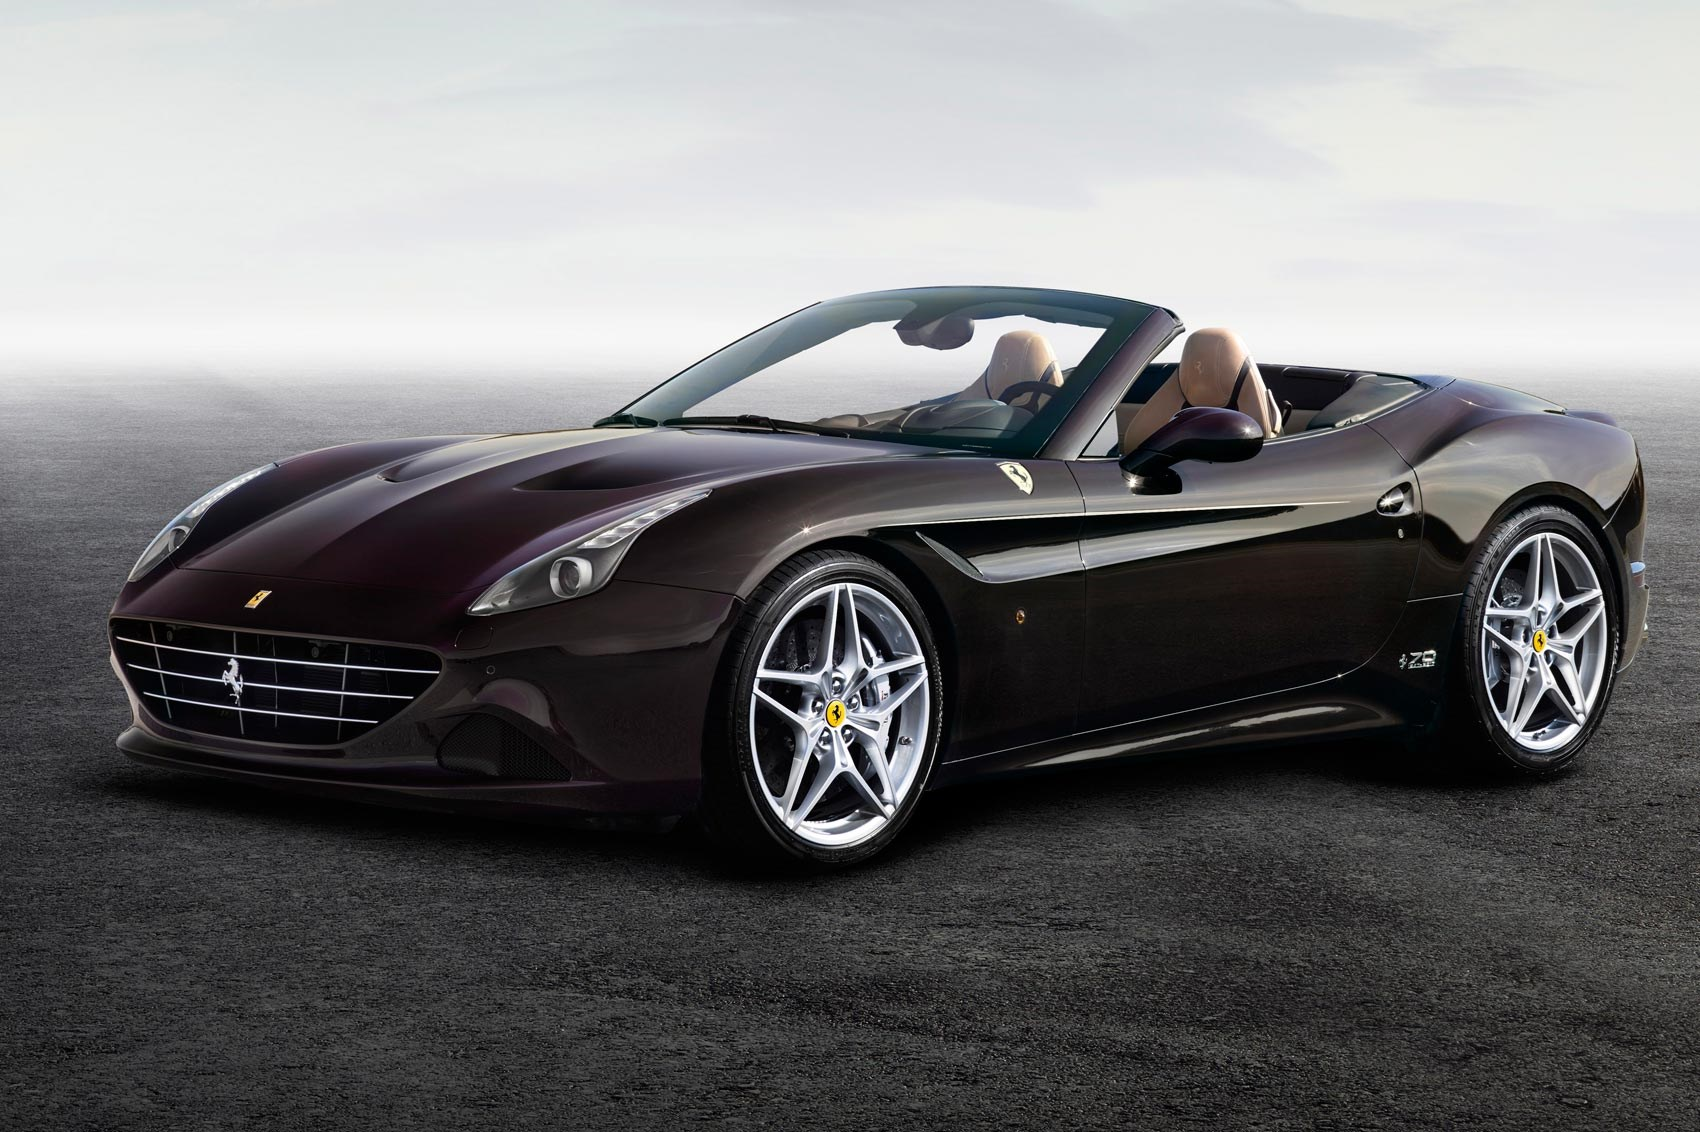 ... Ferrari Launches 70 Year Anniversary Models At Paris 2016 ...